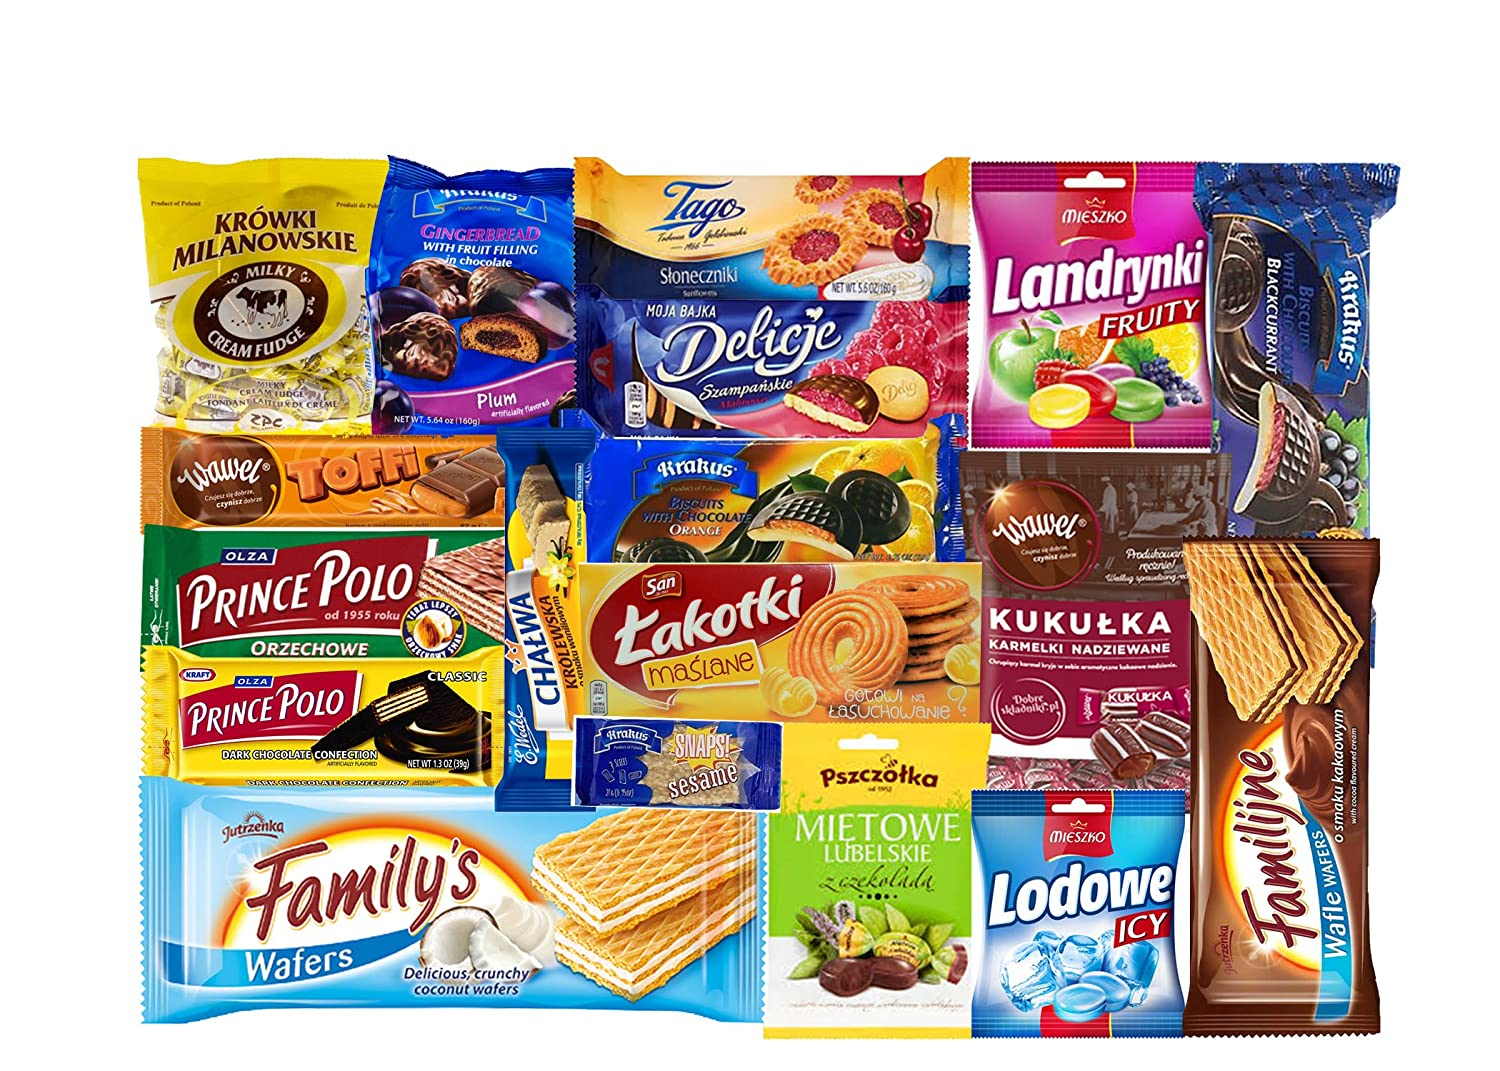 TASTE OF POLAND SWEET BOX Packing by Granda 3.5 lb TRADITIONAL POLISH SWEETS, 10 COUNT